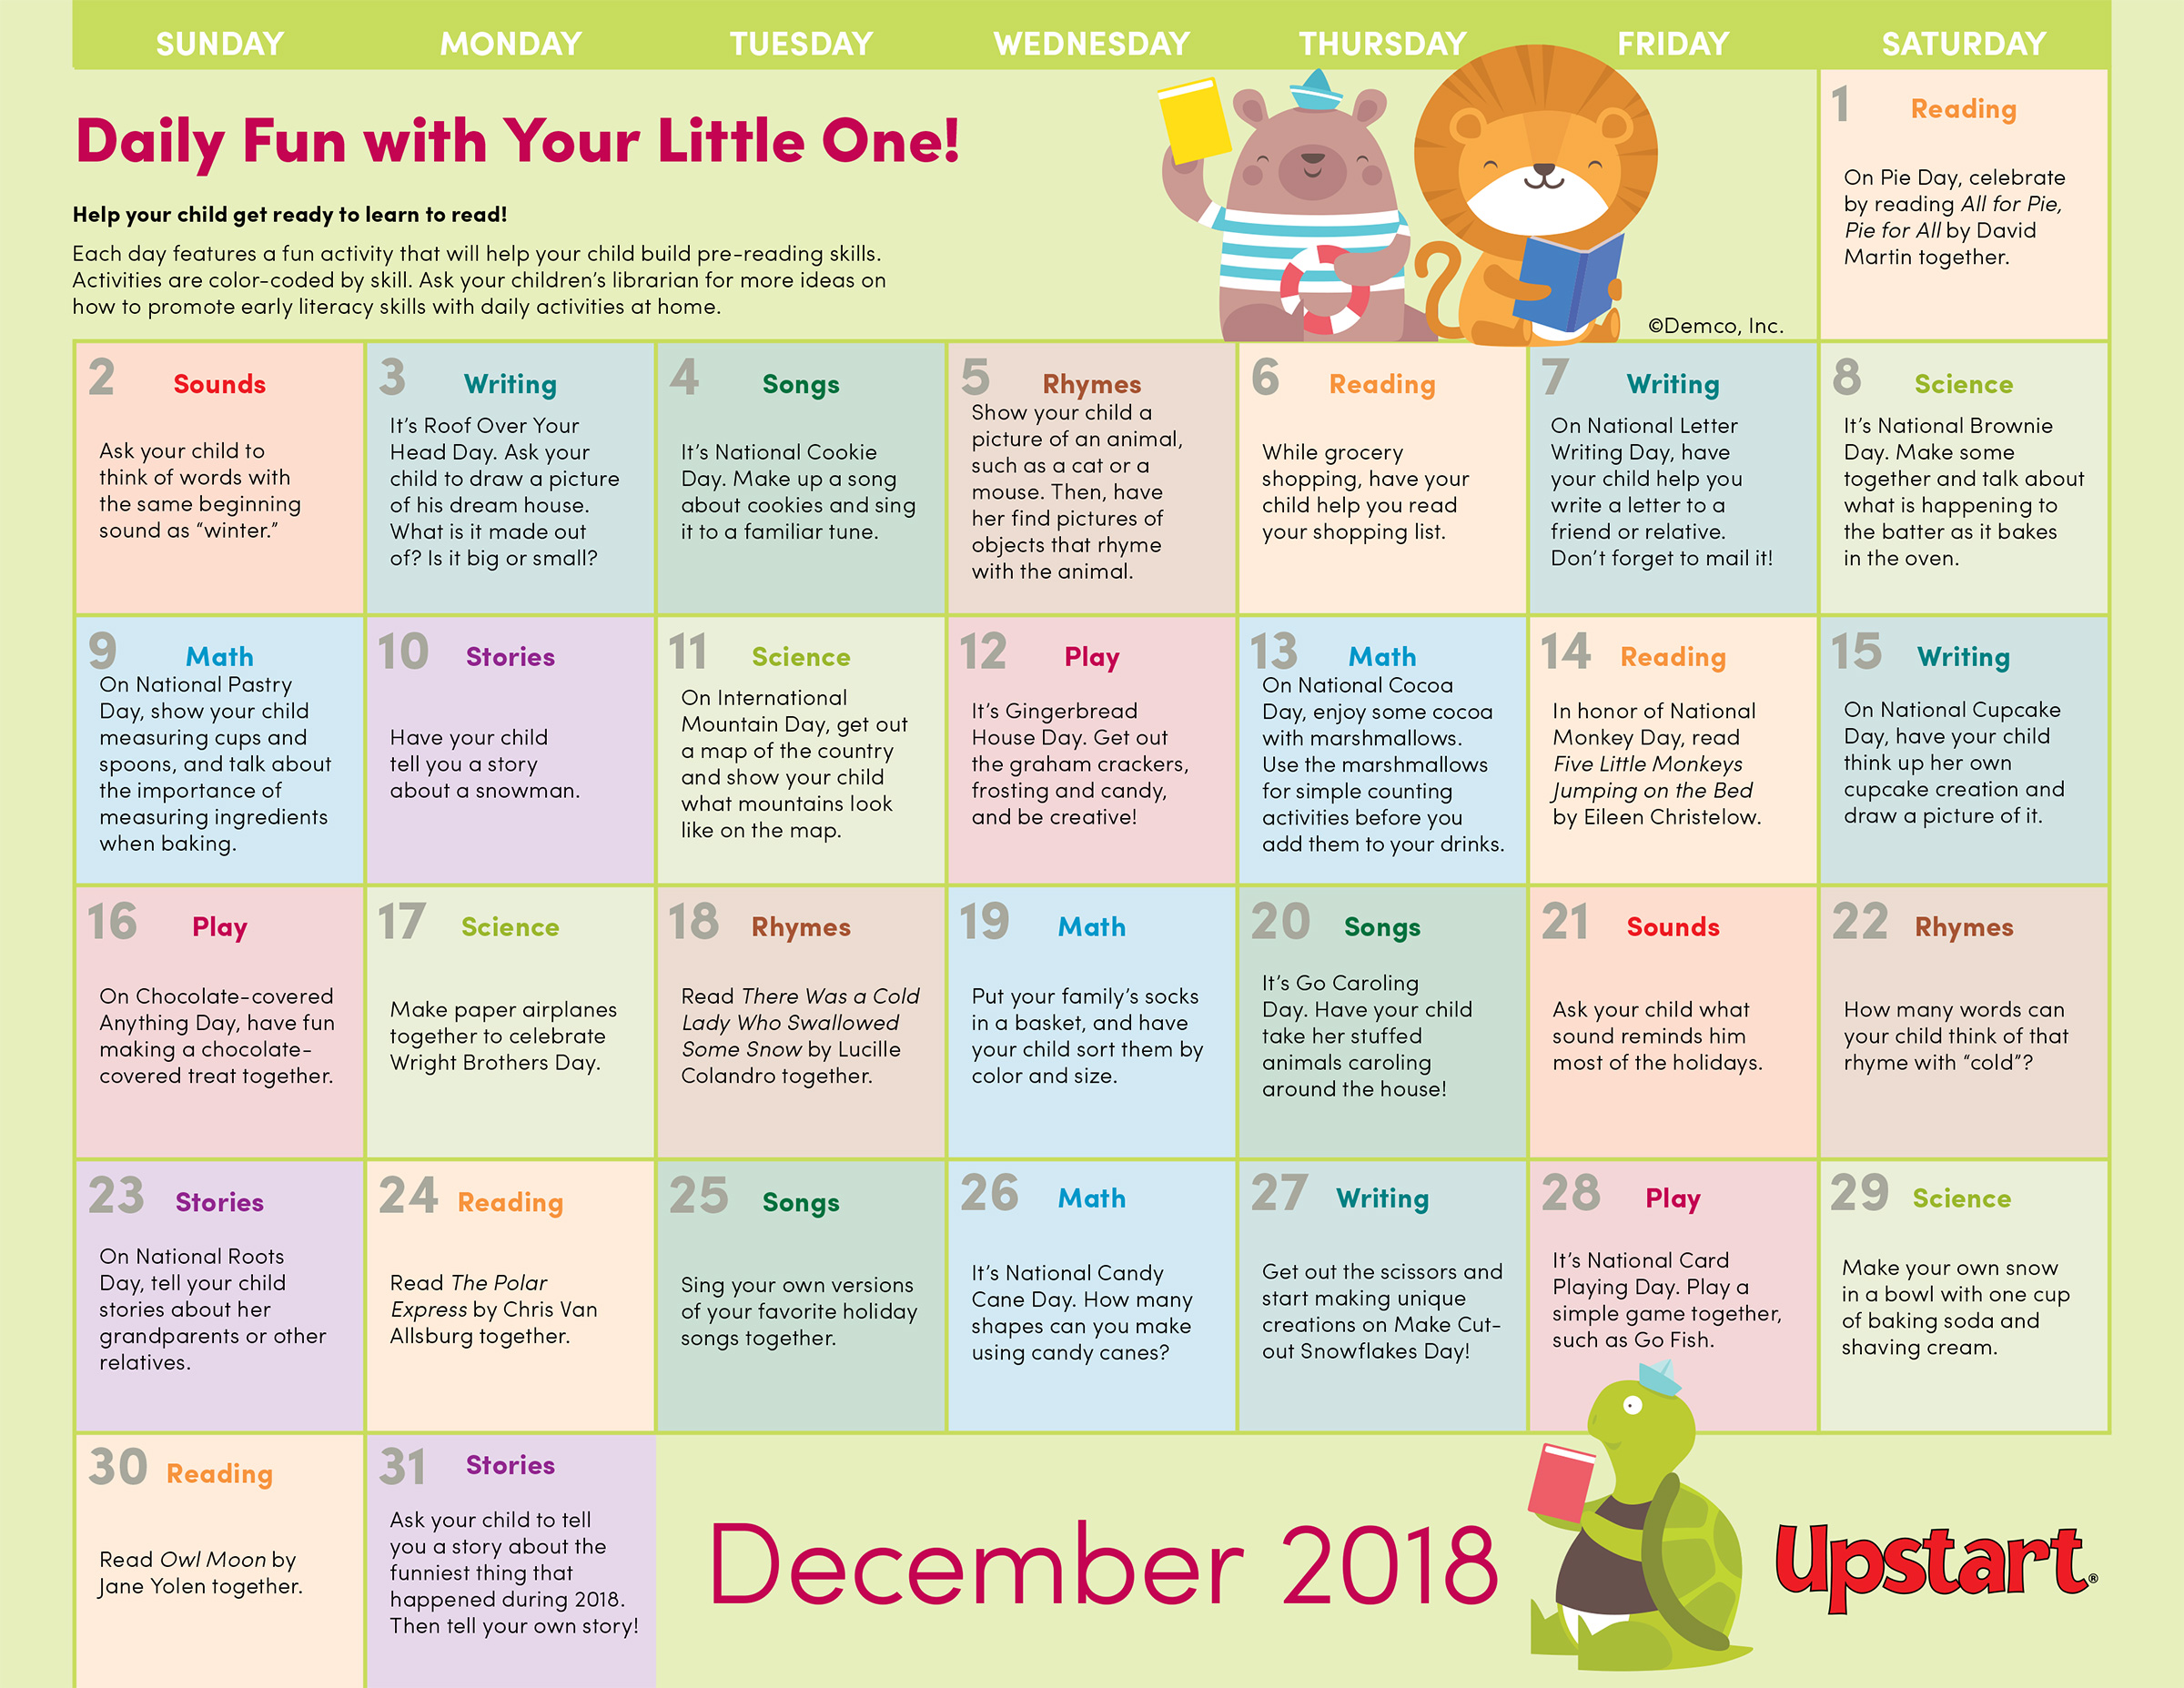 Early Literacy Activities Calendar: December 2018